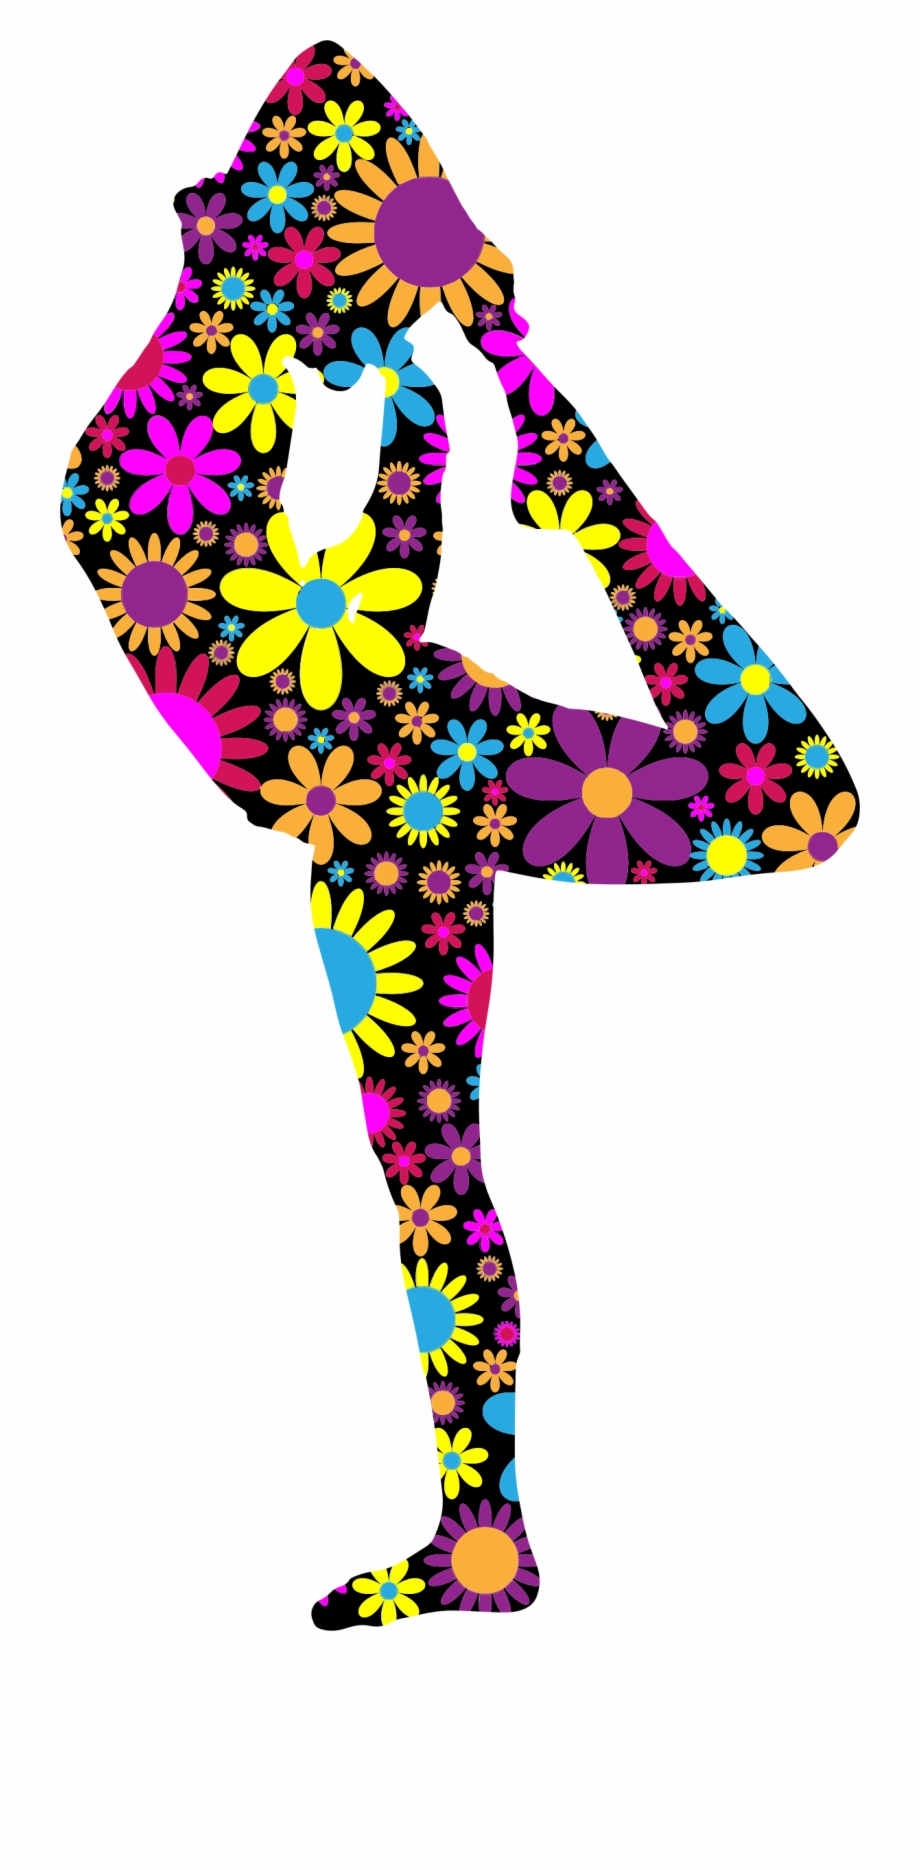 Floral Female Pose Silhouette Big Image Png Yoga Poses Graphics Transparent Png Download 2790228 Vippng